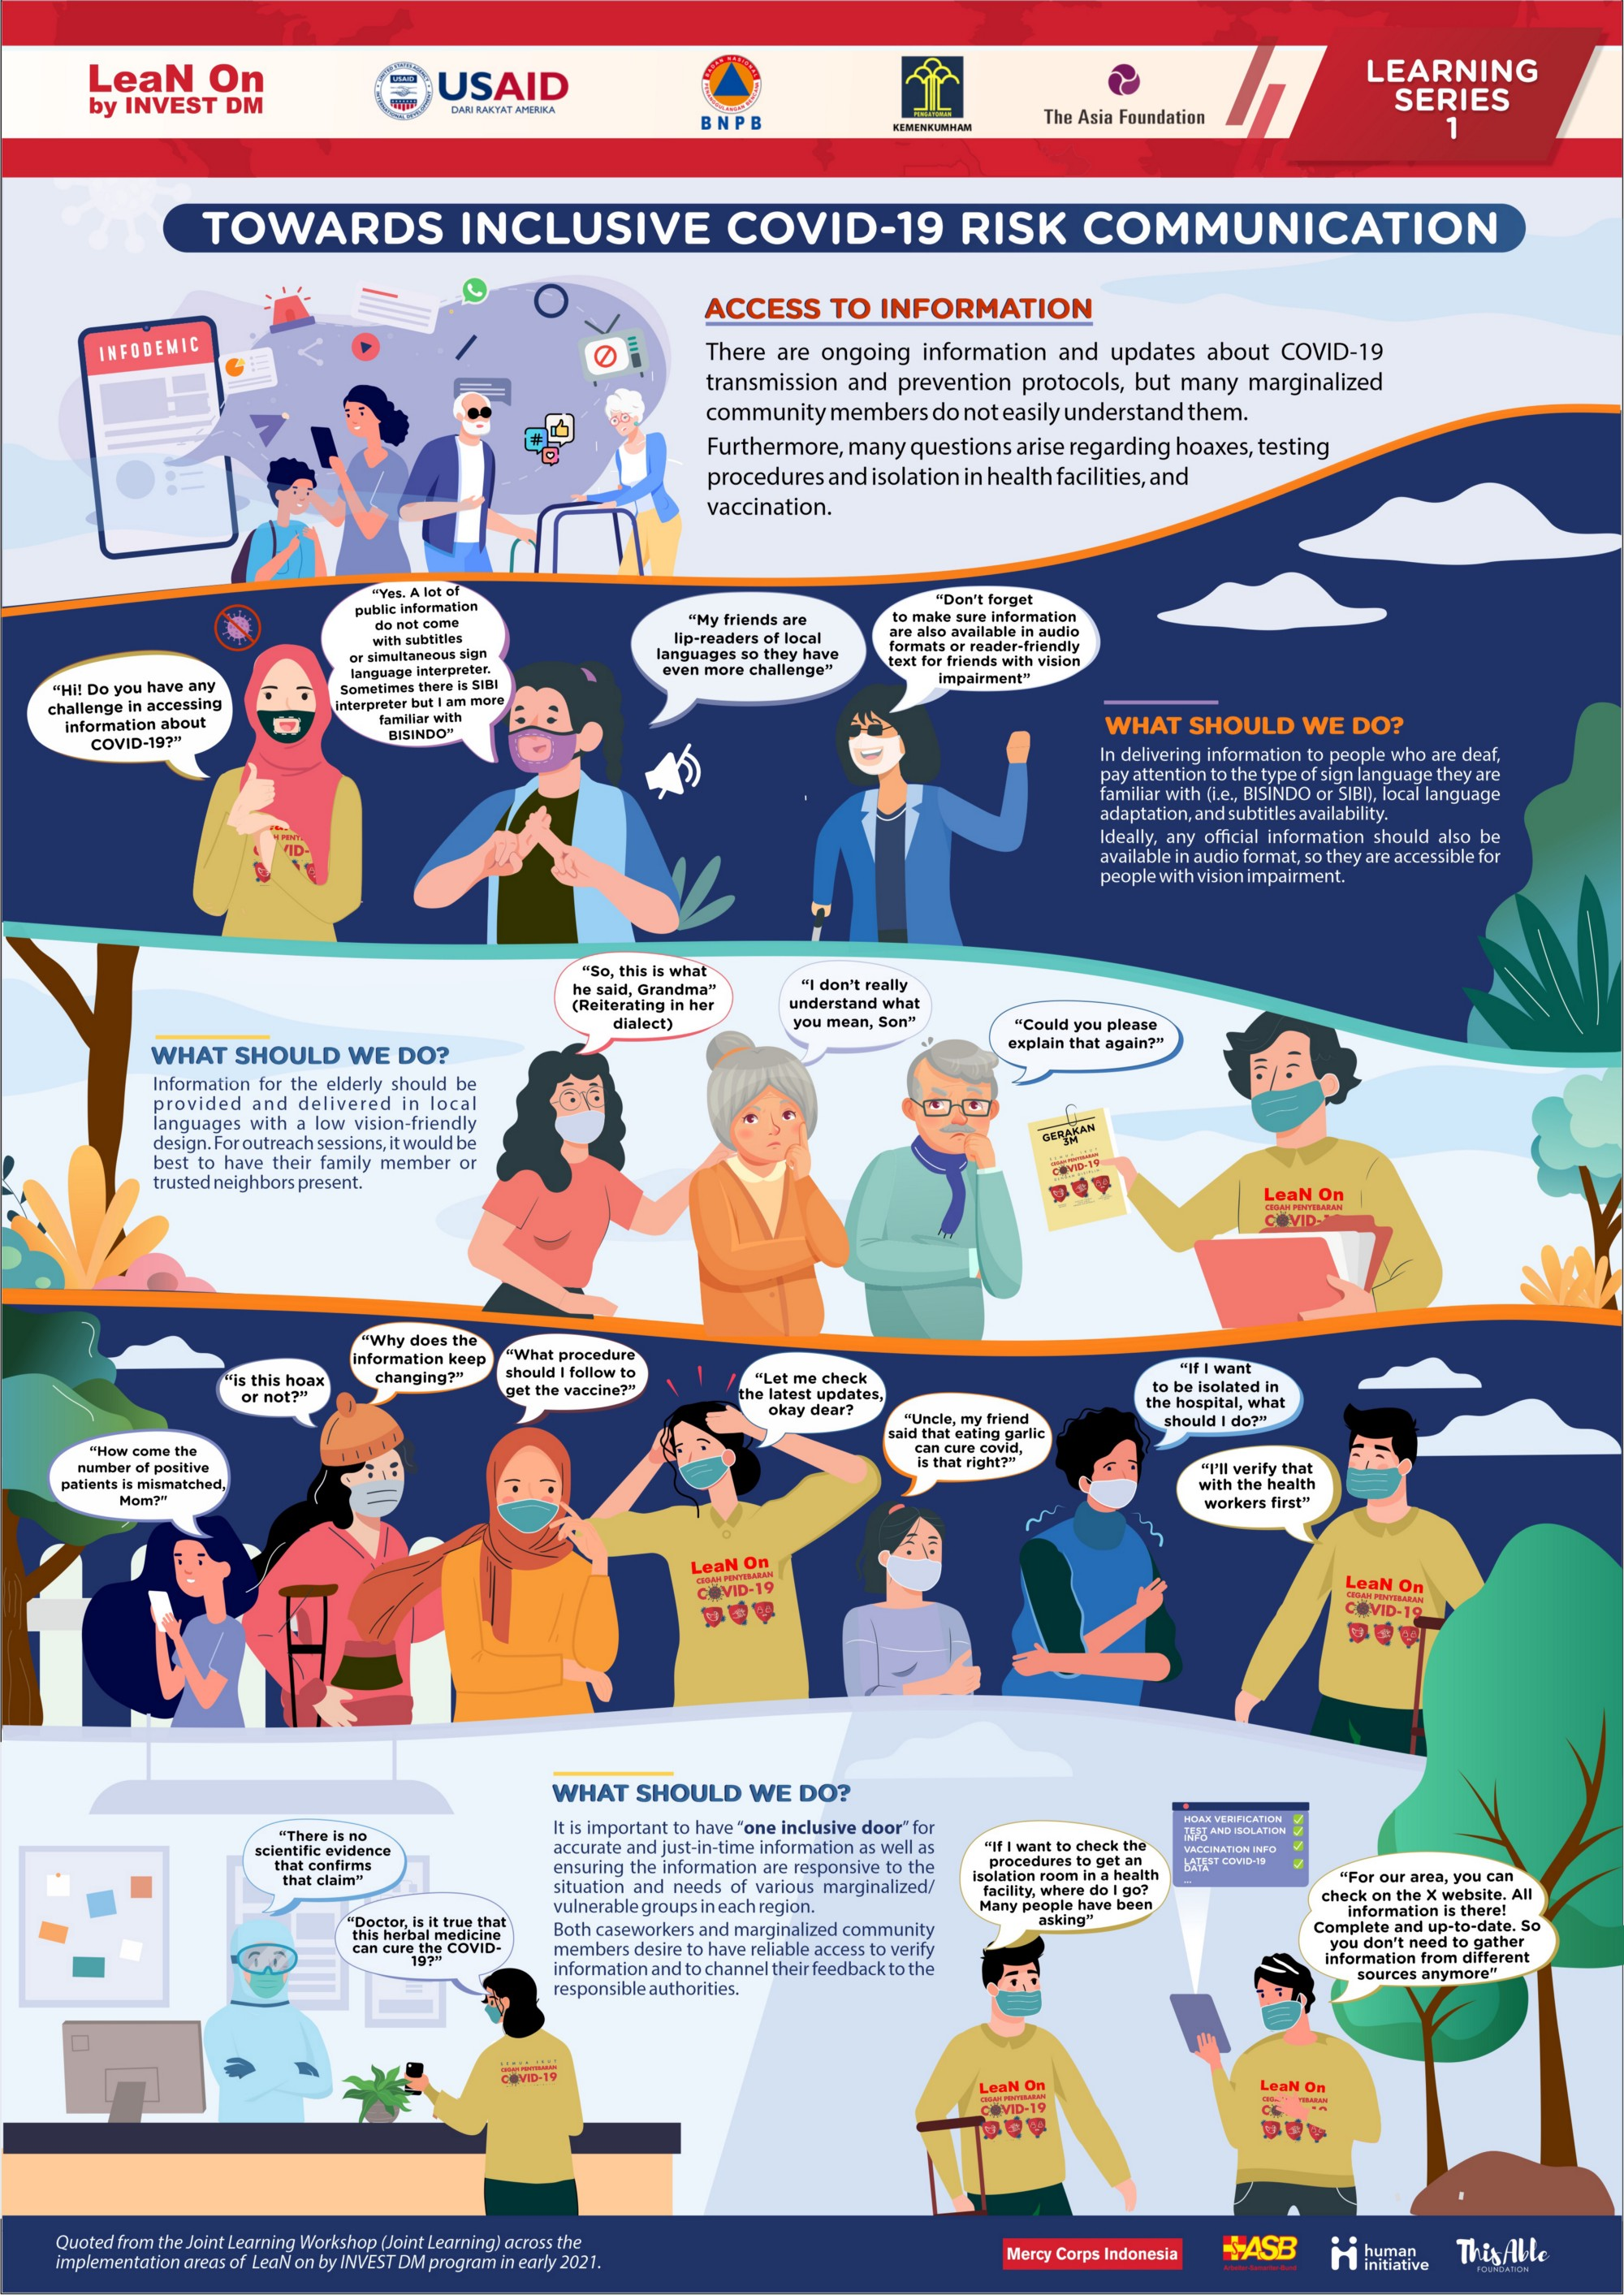 This infographic explains the challenges faced by persons with disabilities and other marginalized groups in accessing COVID-19 risk information, along with recommendations for more inclusive access to pandemic information. An audio version of the infographic will be added to this page soon.